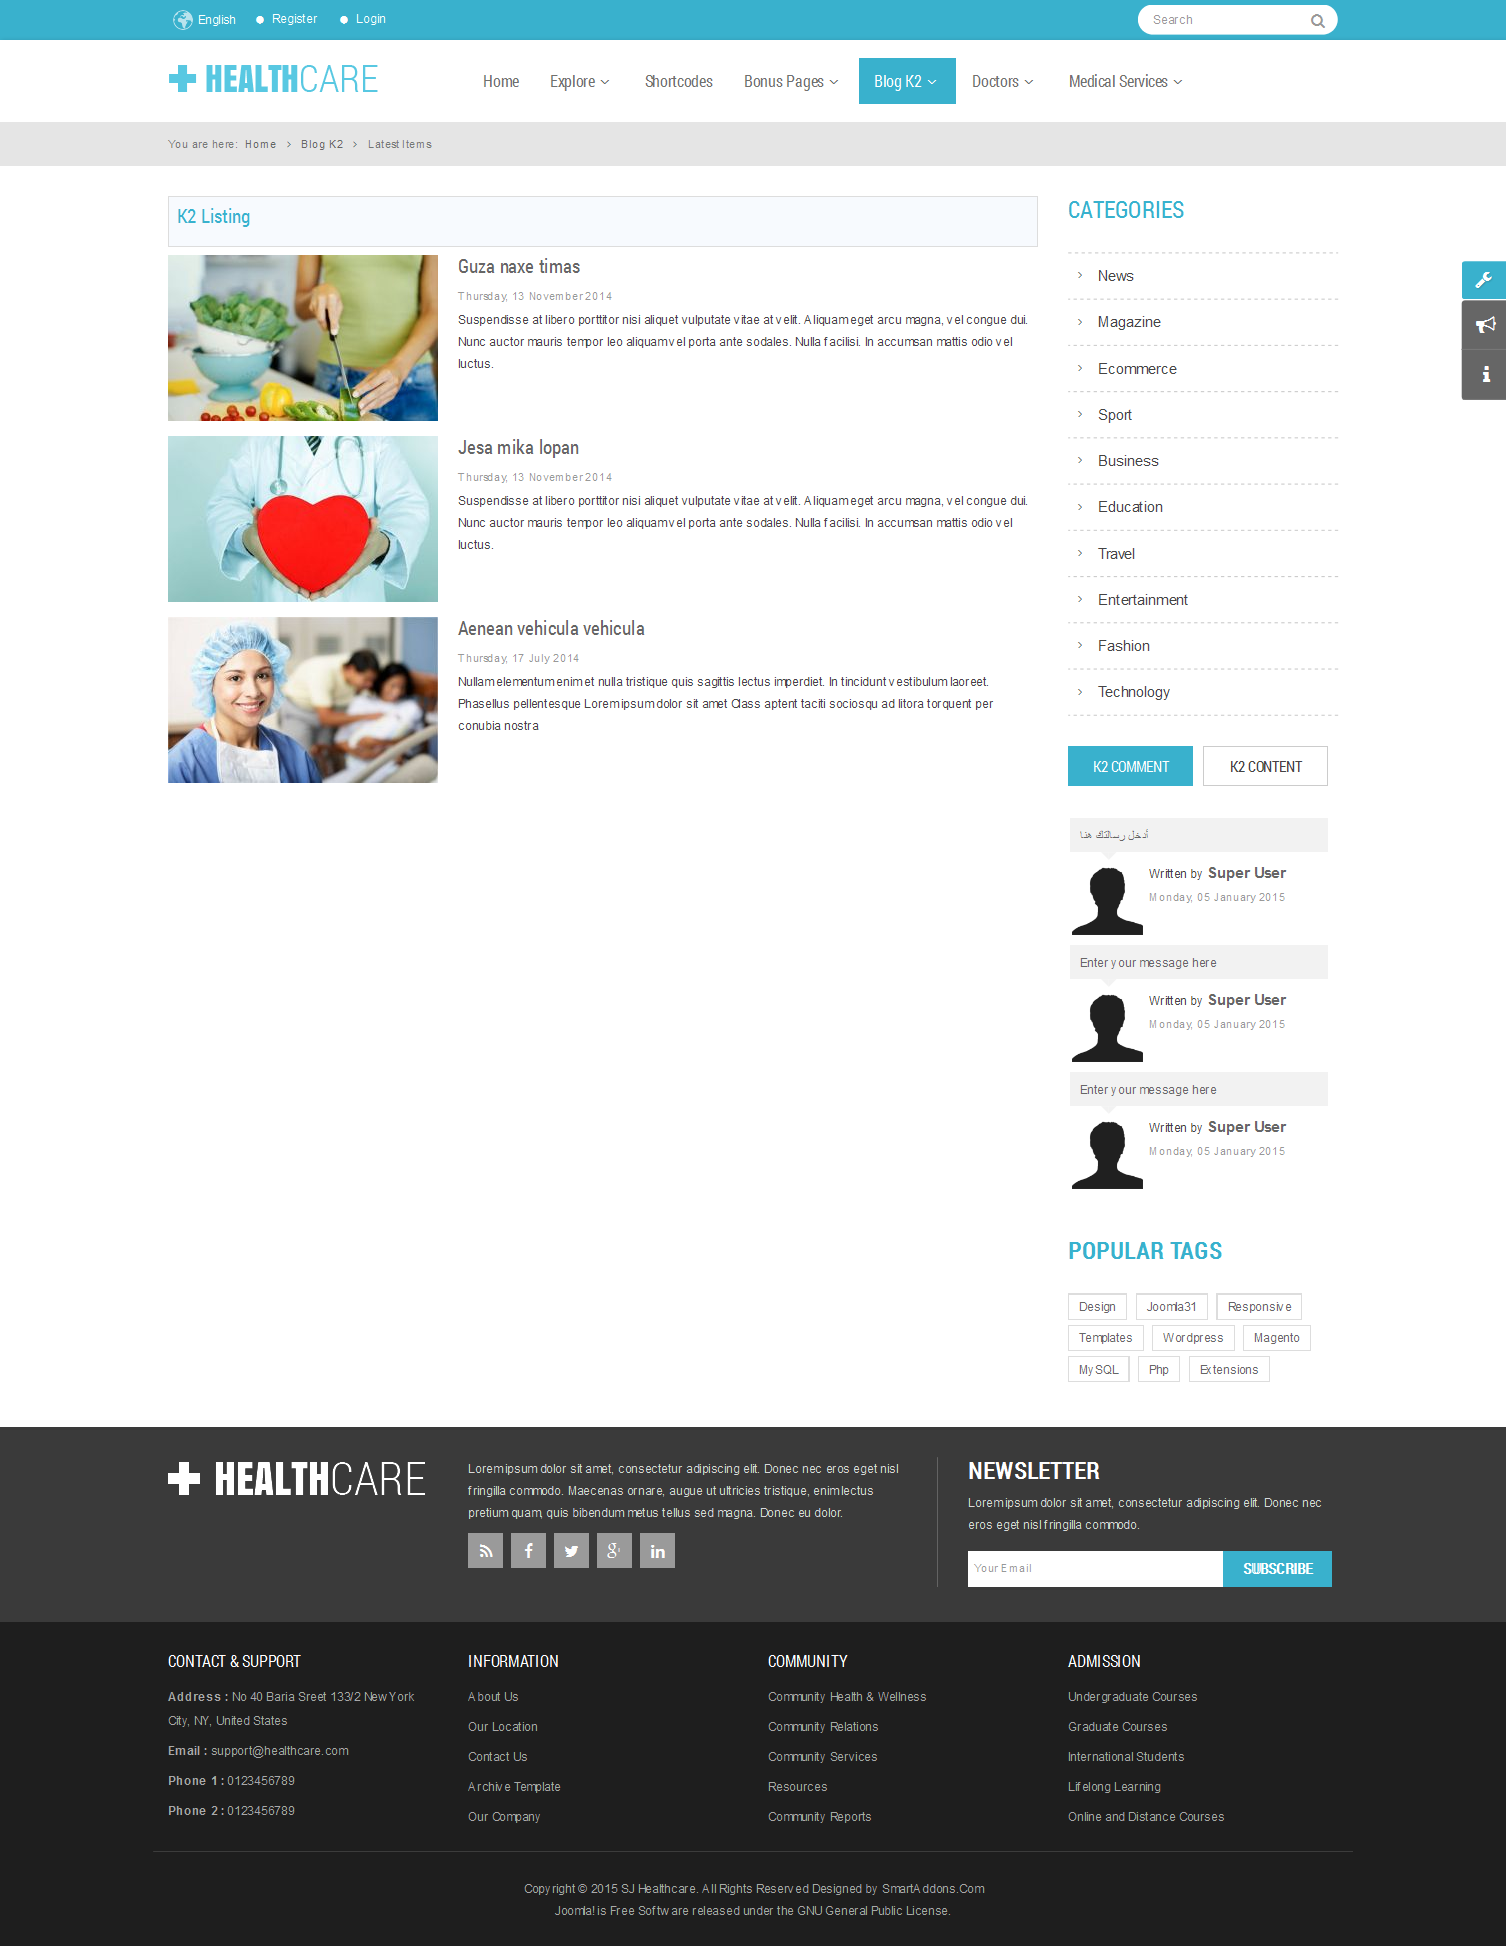 SJ Healthcare - Responsive Joomla Medical Health Template - 03_latest-item.png